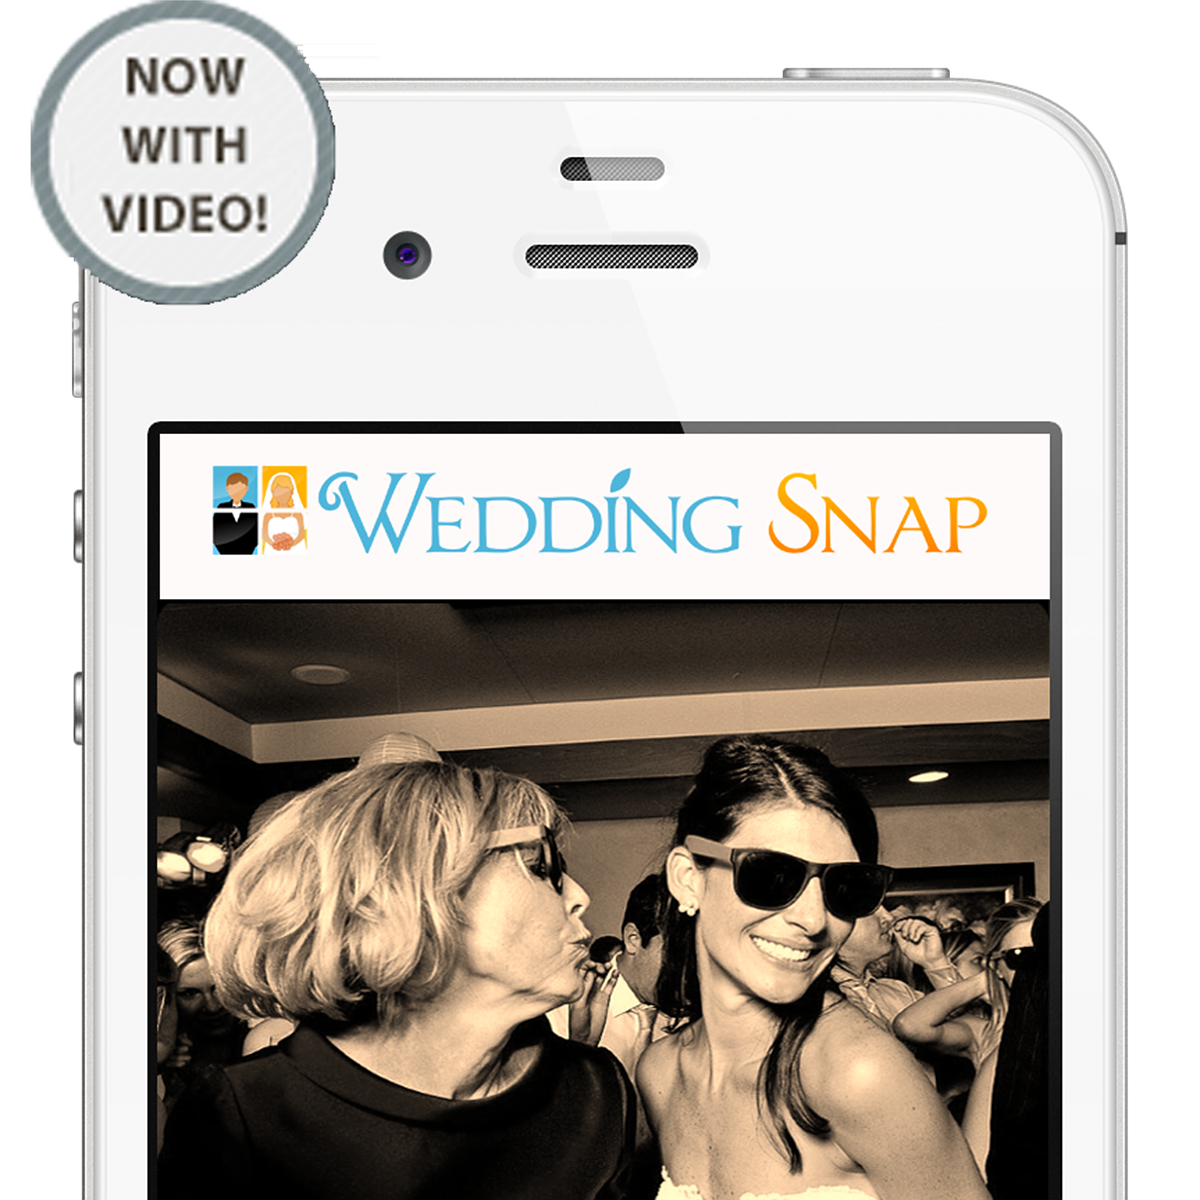 6 apps to swap and share photos from any event: Digital